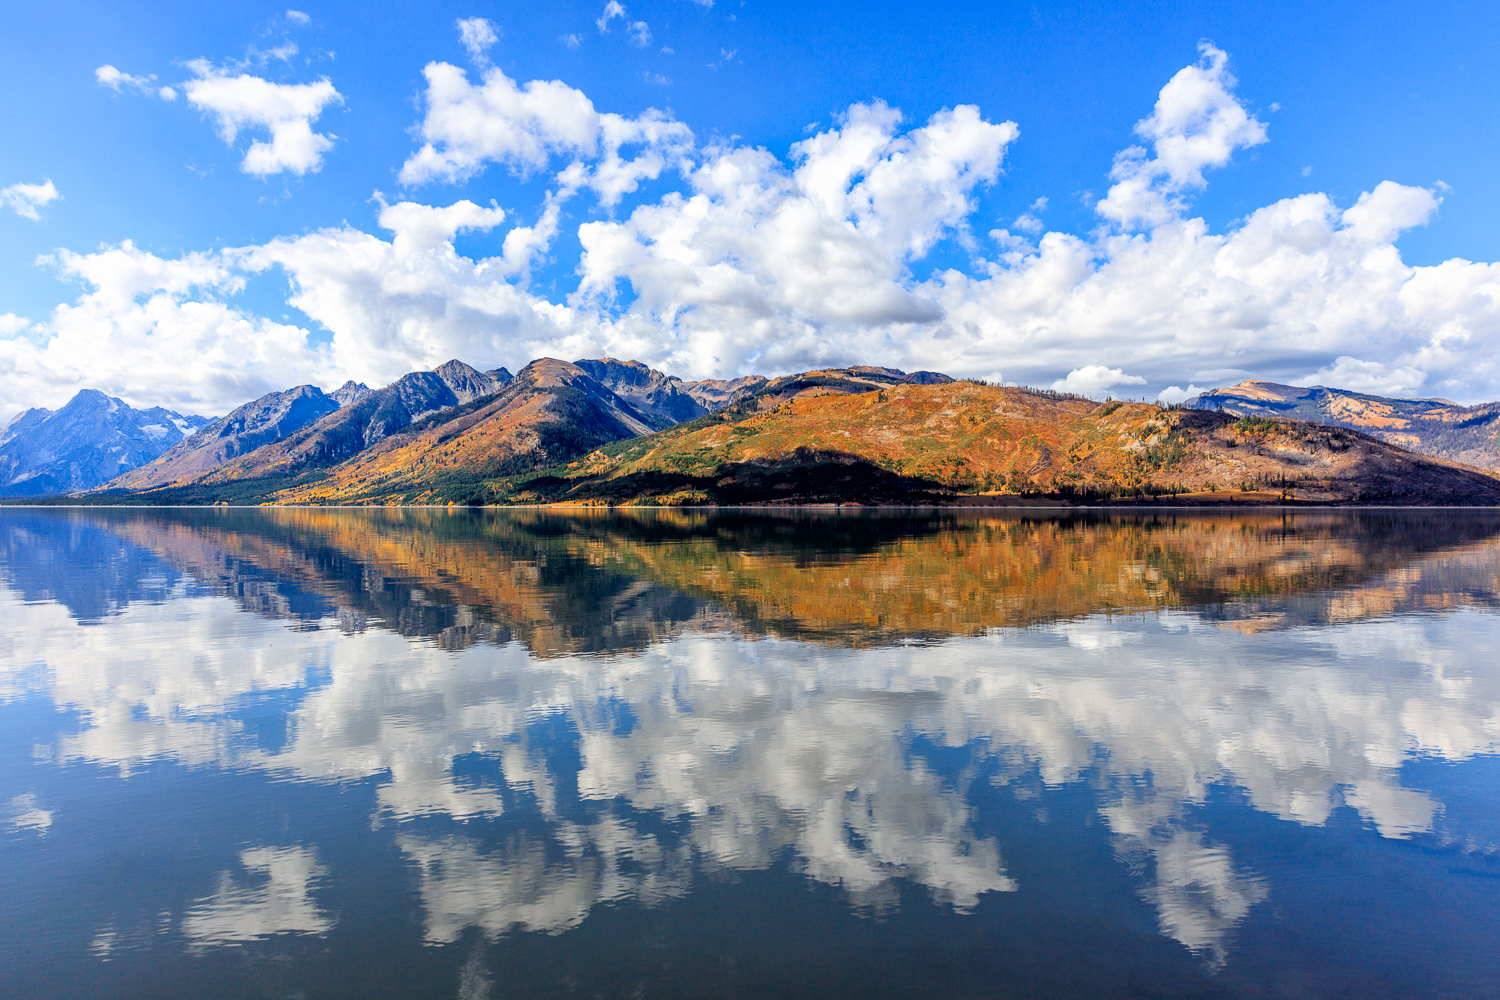 Reflection on Jackson Lake